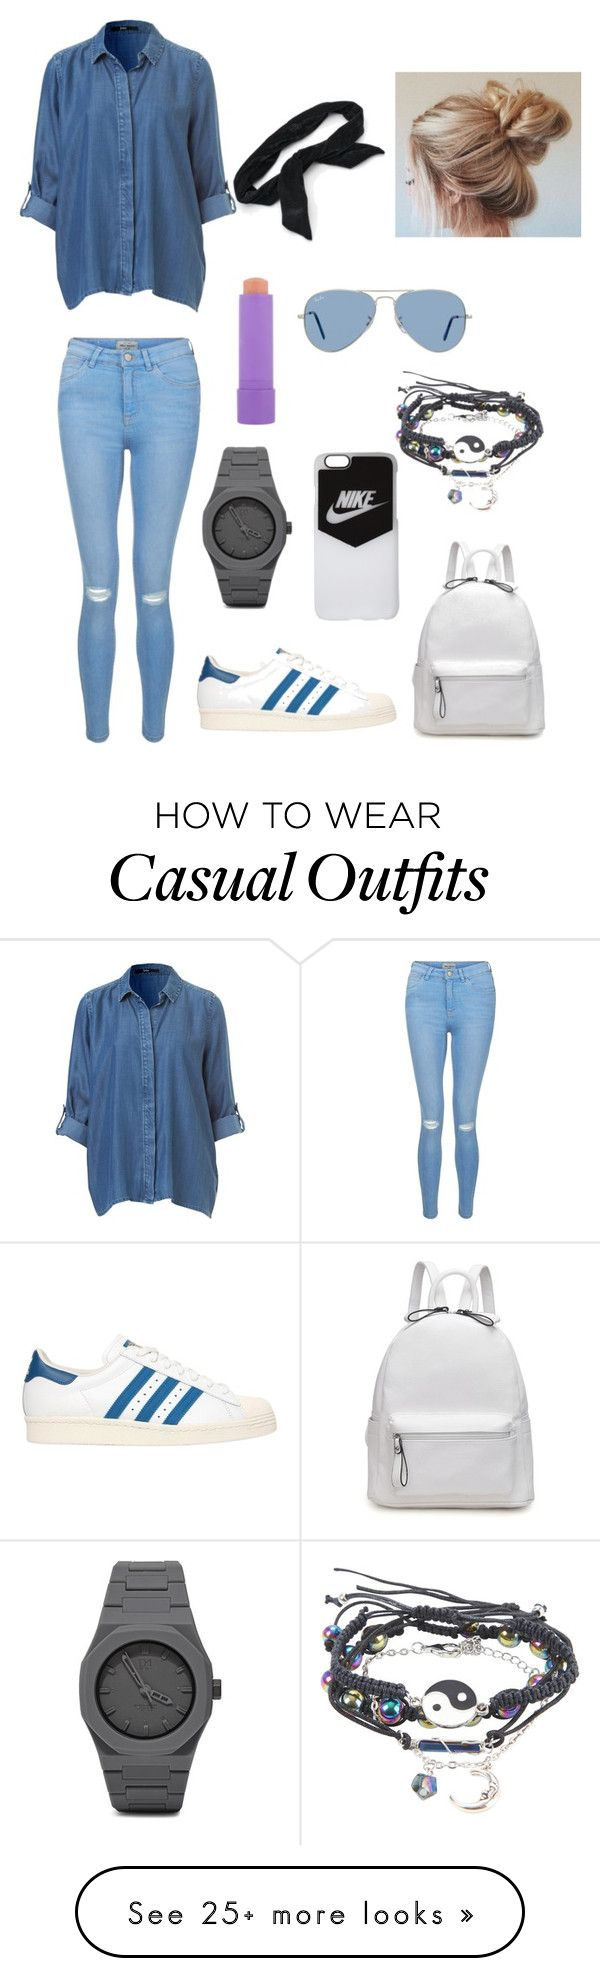 Casual. by annayagerber on Polyvore featuring New Look, adidas Originals, Ray-Ban, NIKE, Maybelline, CC and Candies